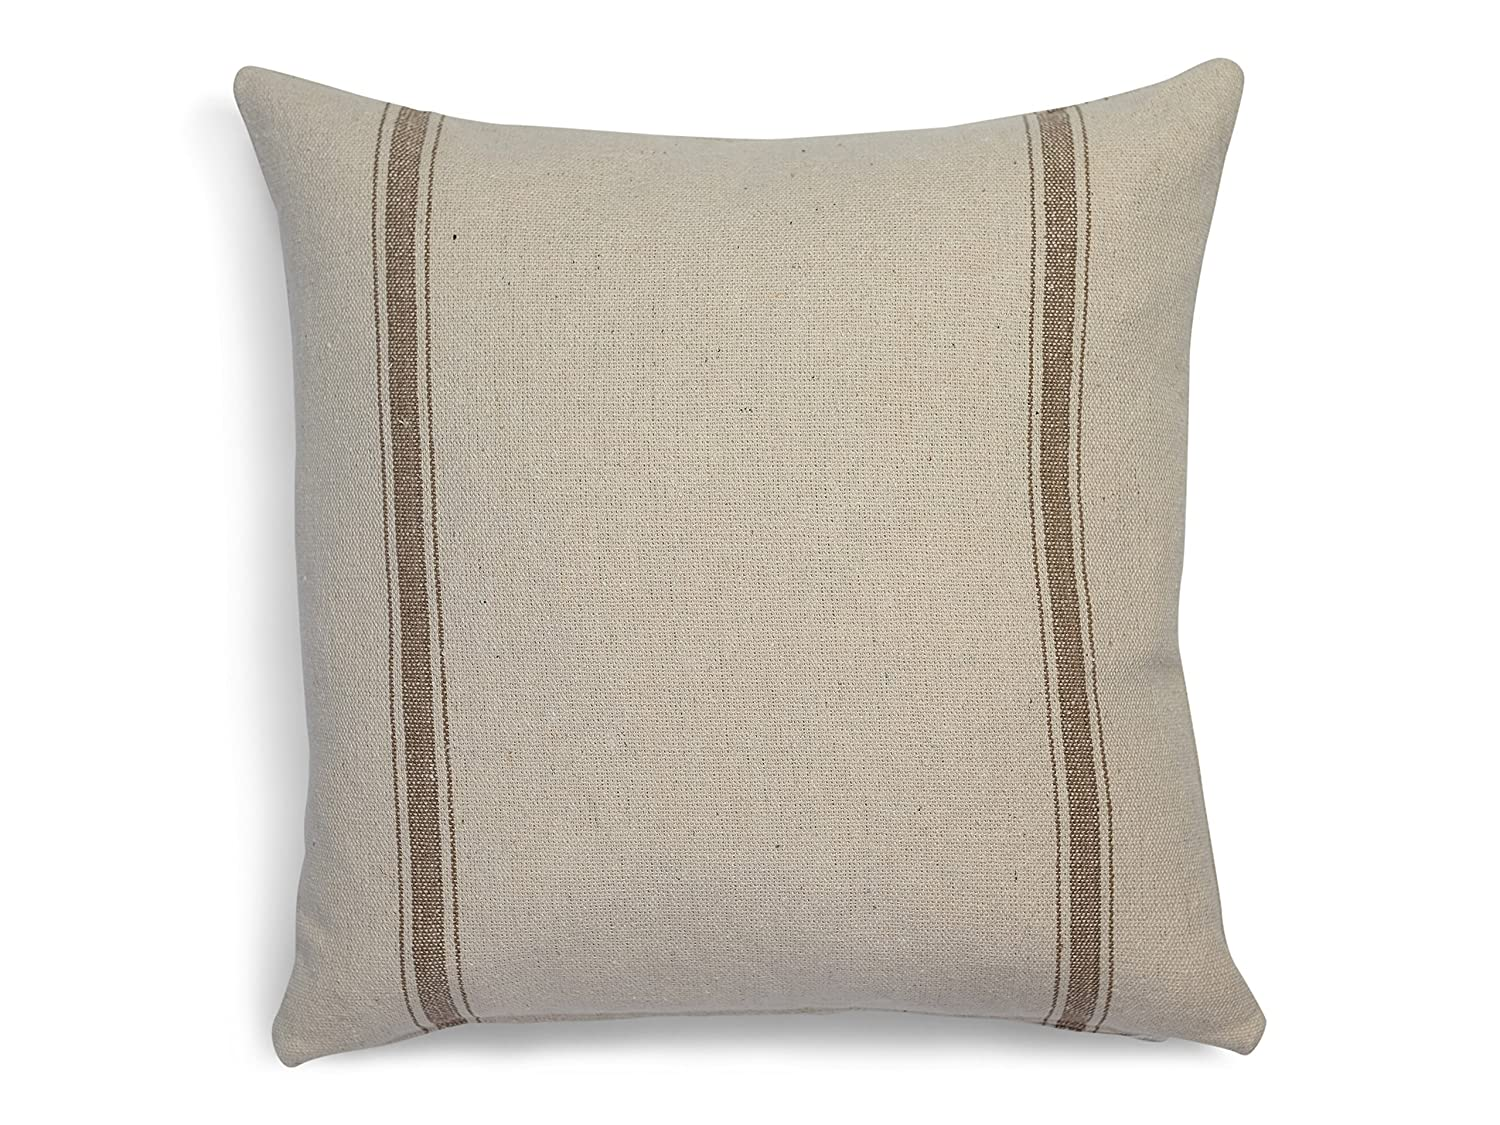 Grain sack Farmhouse Pillow Cover in many sizes